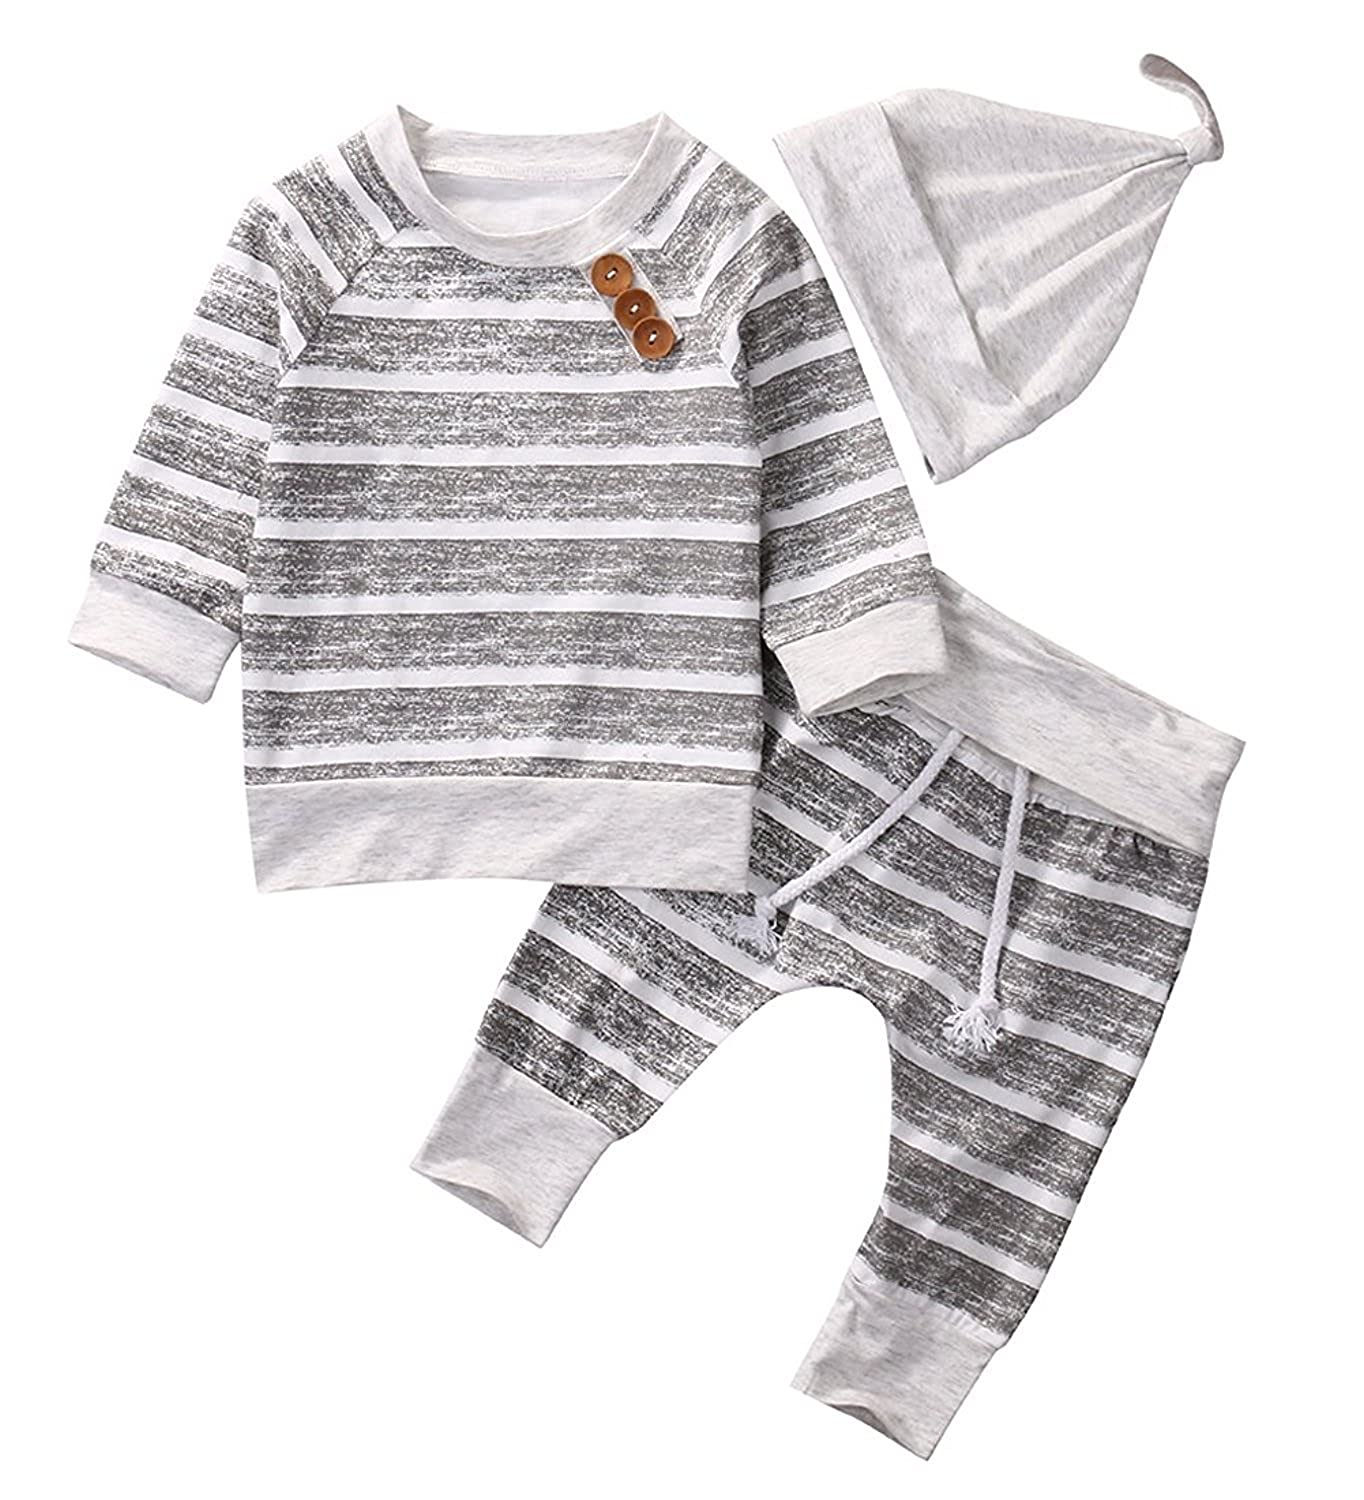 Newborn Baby Boys Girls Grey Hoodie Sweatshirt Top + Striped Pants Outfits Set TODDLING Around Clothes Doding